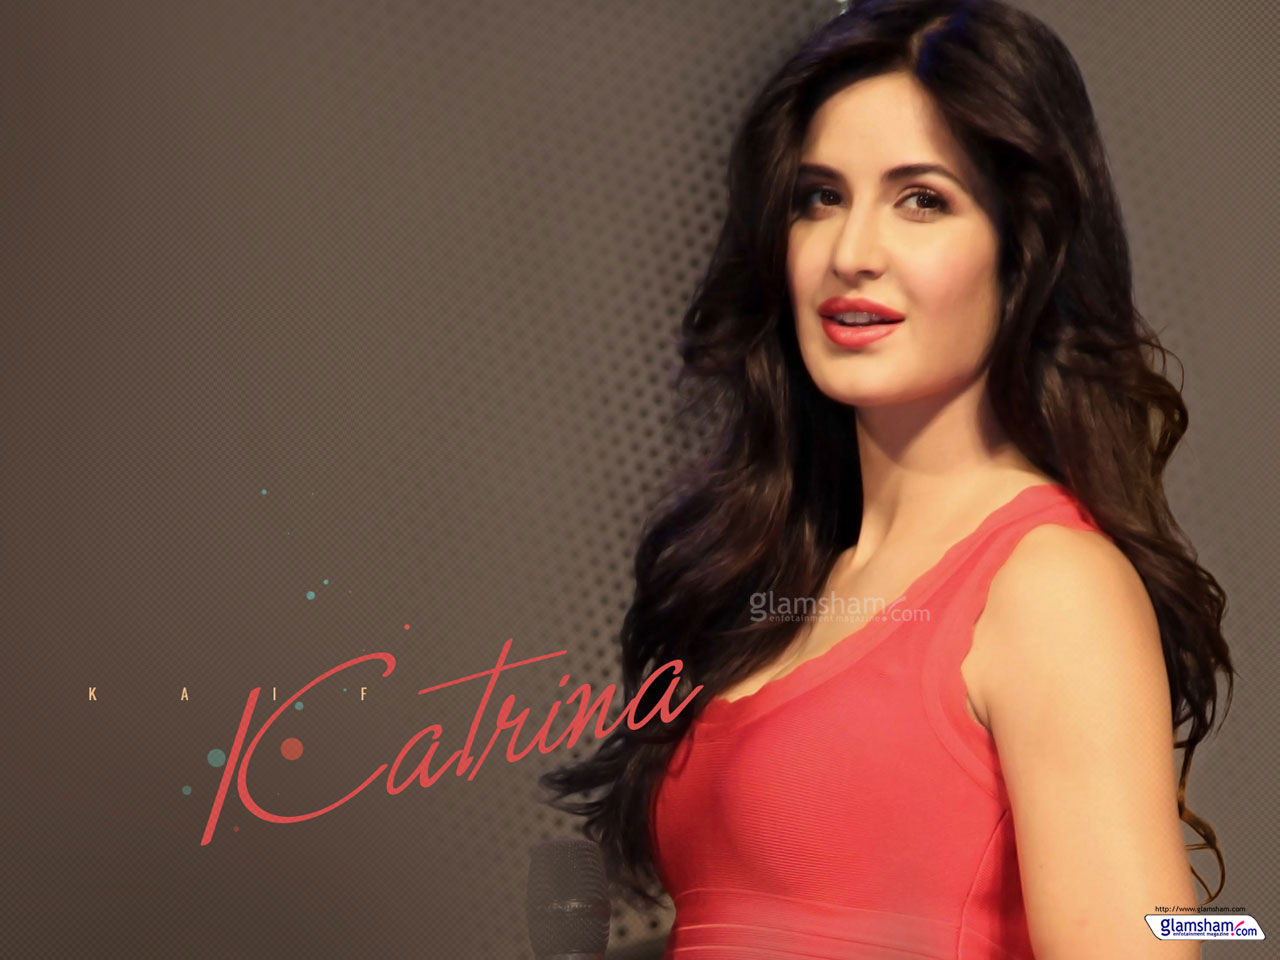 Katrina Kaif wallpaper 1280x960 #20081